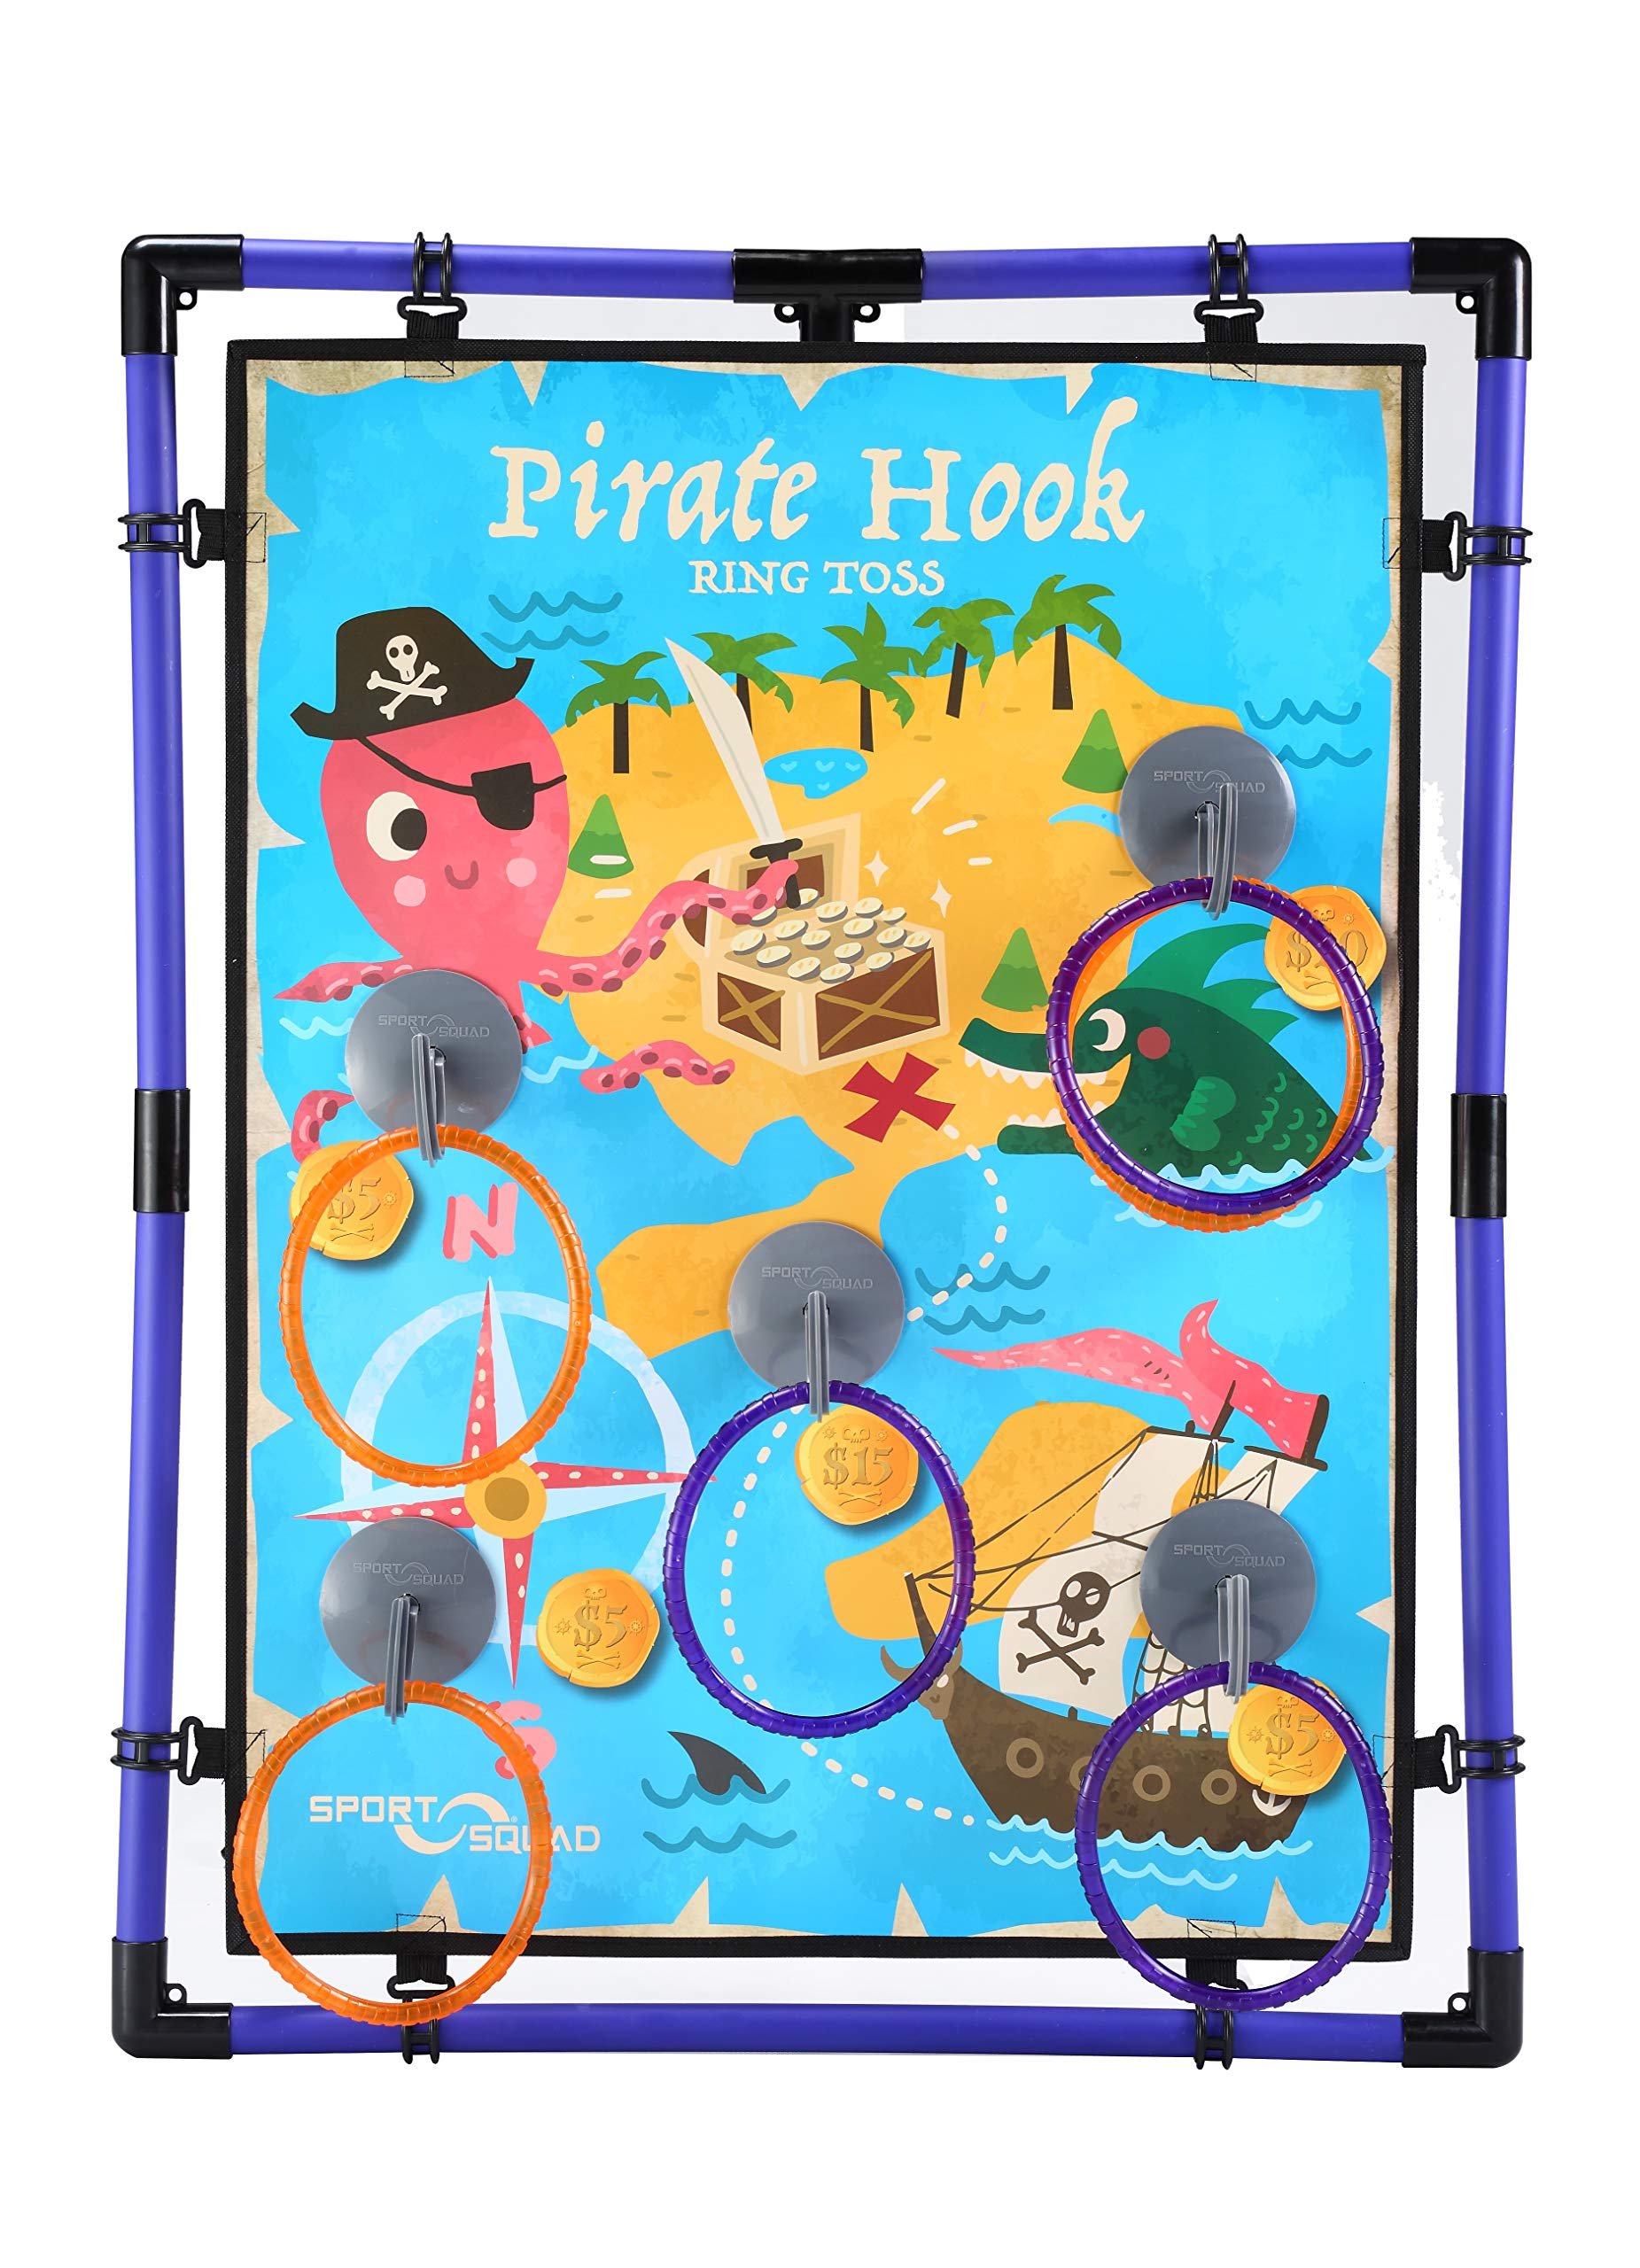 Sport Squad Pirate Hook Ring Toss - Indoor & Outdoor Ring Toss Games for Kids and Adults - Portable Pirates Ring Toss Game - Great for Pirate Themed Birthday Parties - Incl. 3 Purple & 3 Orange Rings